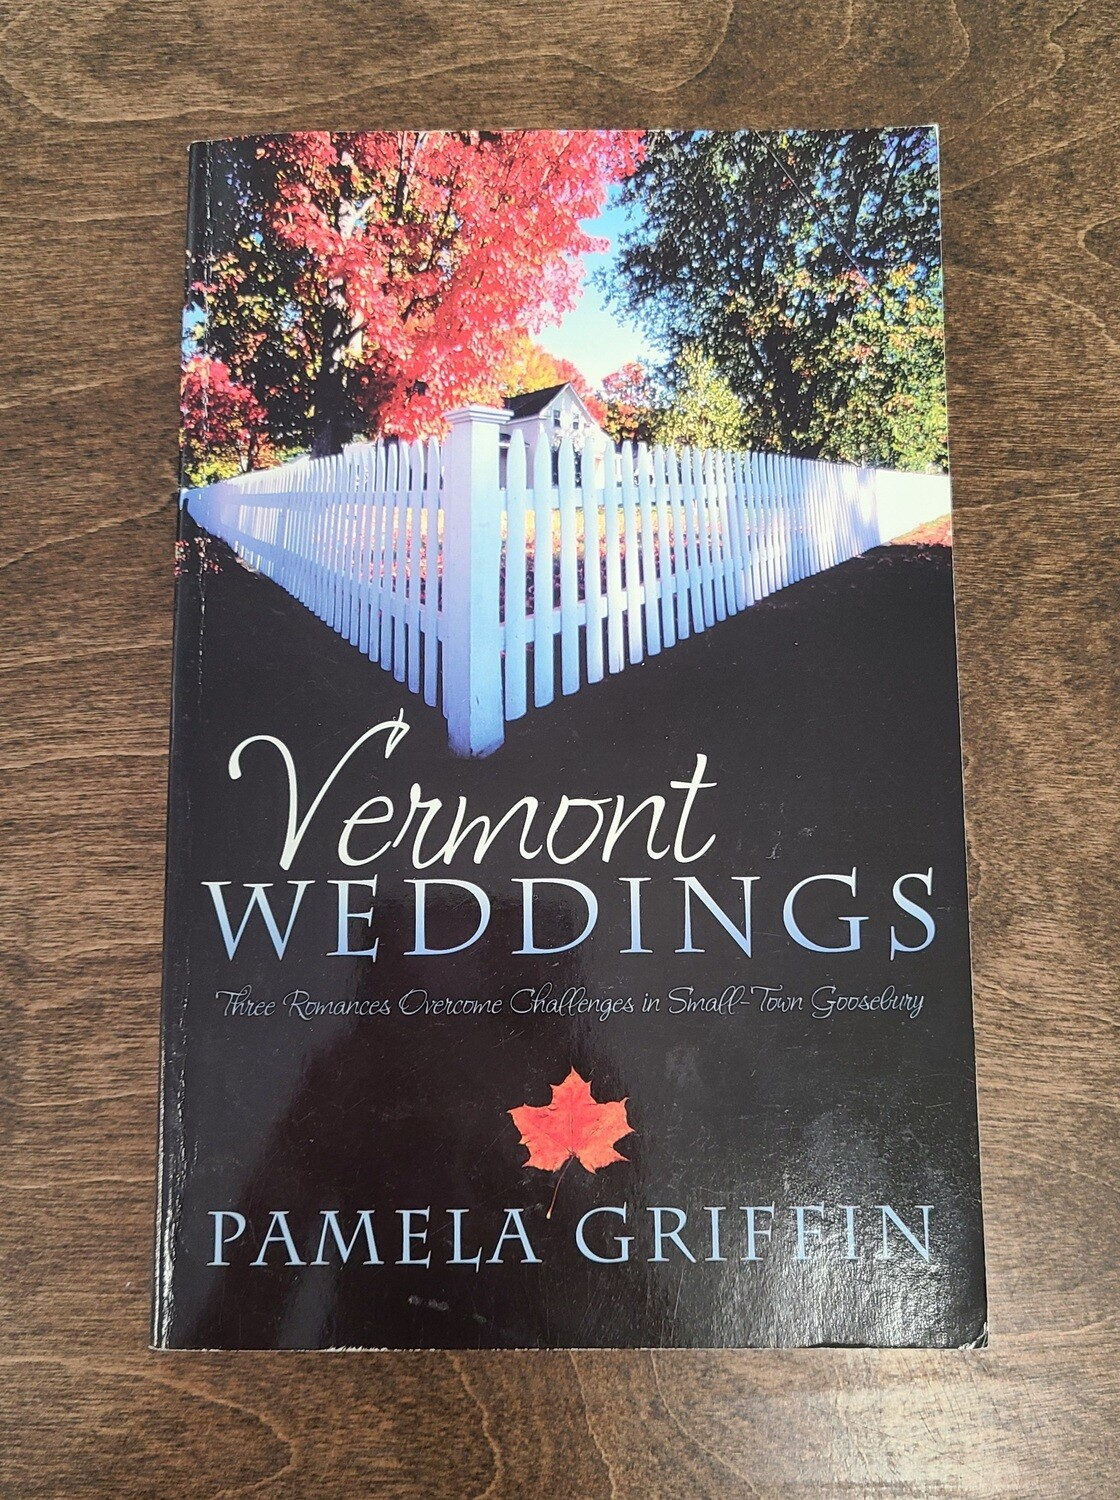 Vermont Weddings by Pamela Griffin